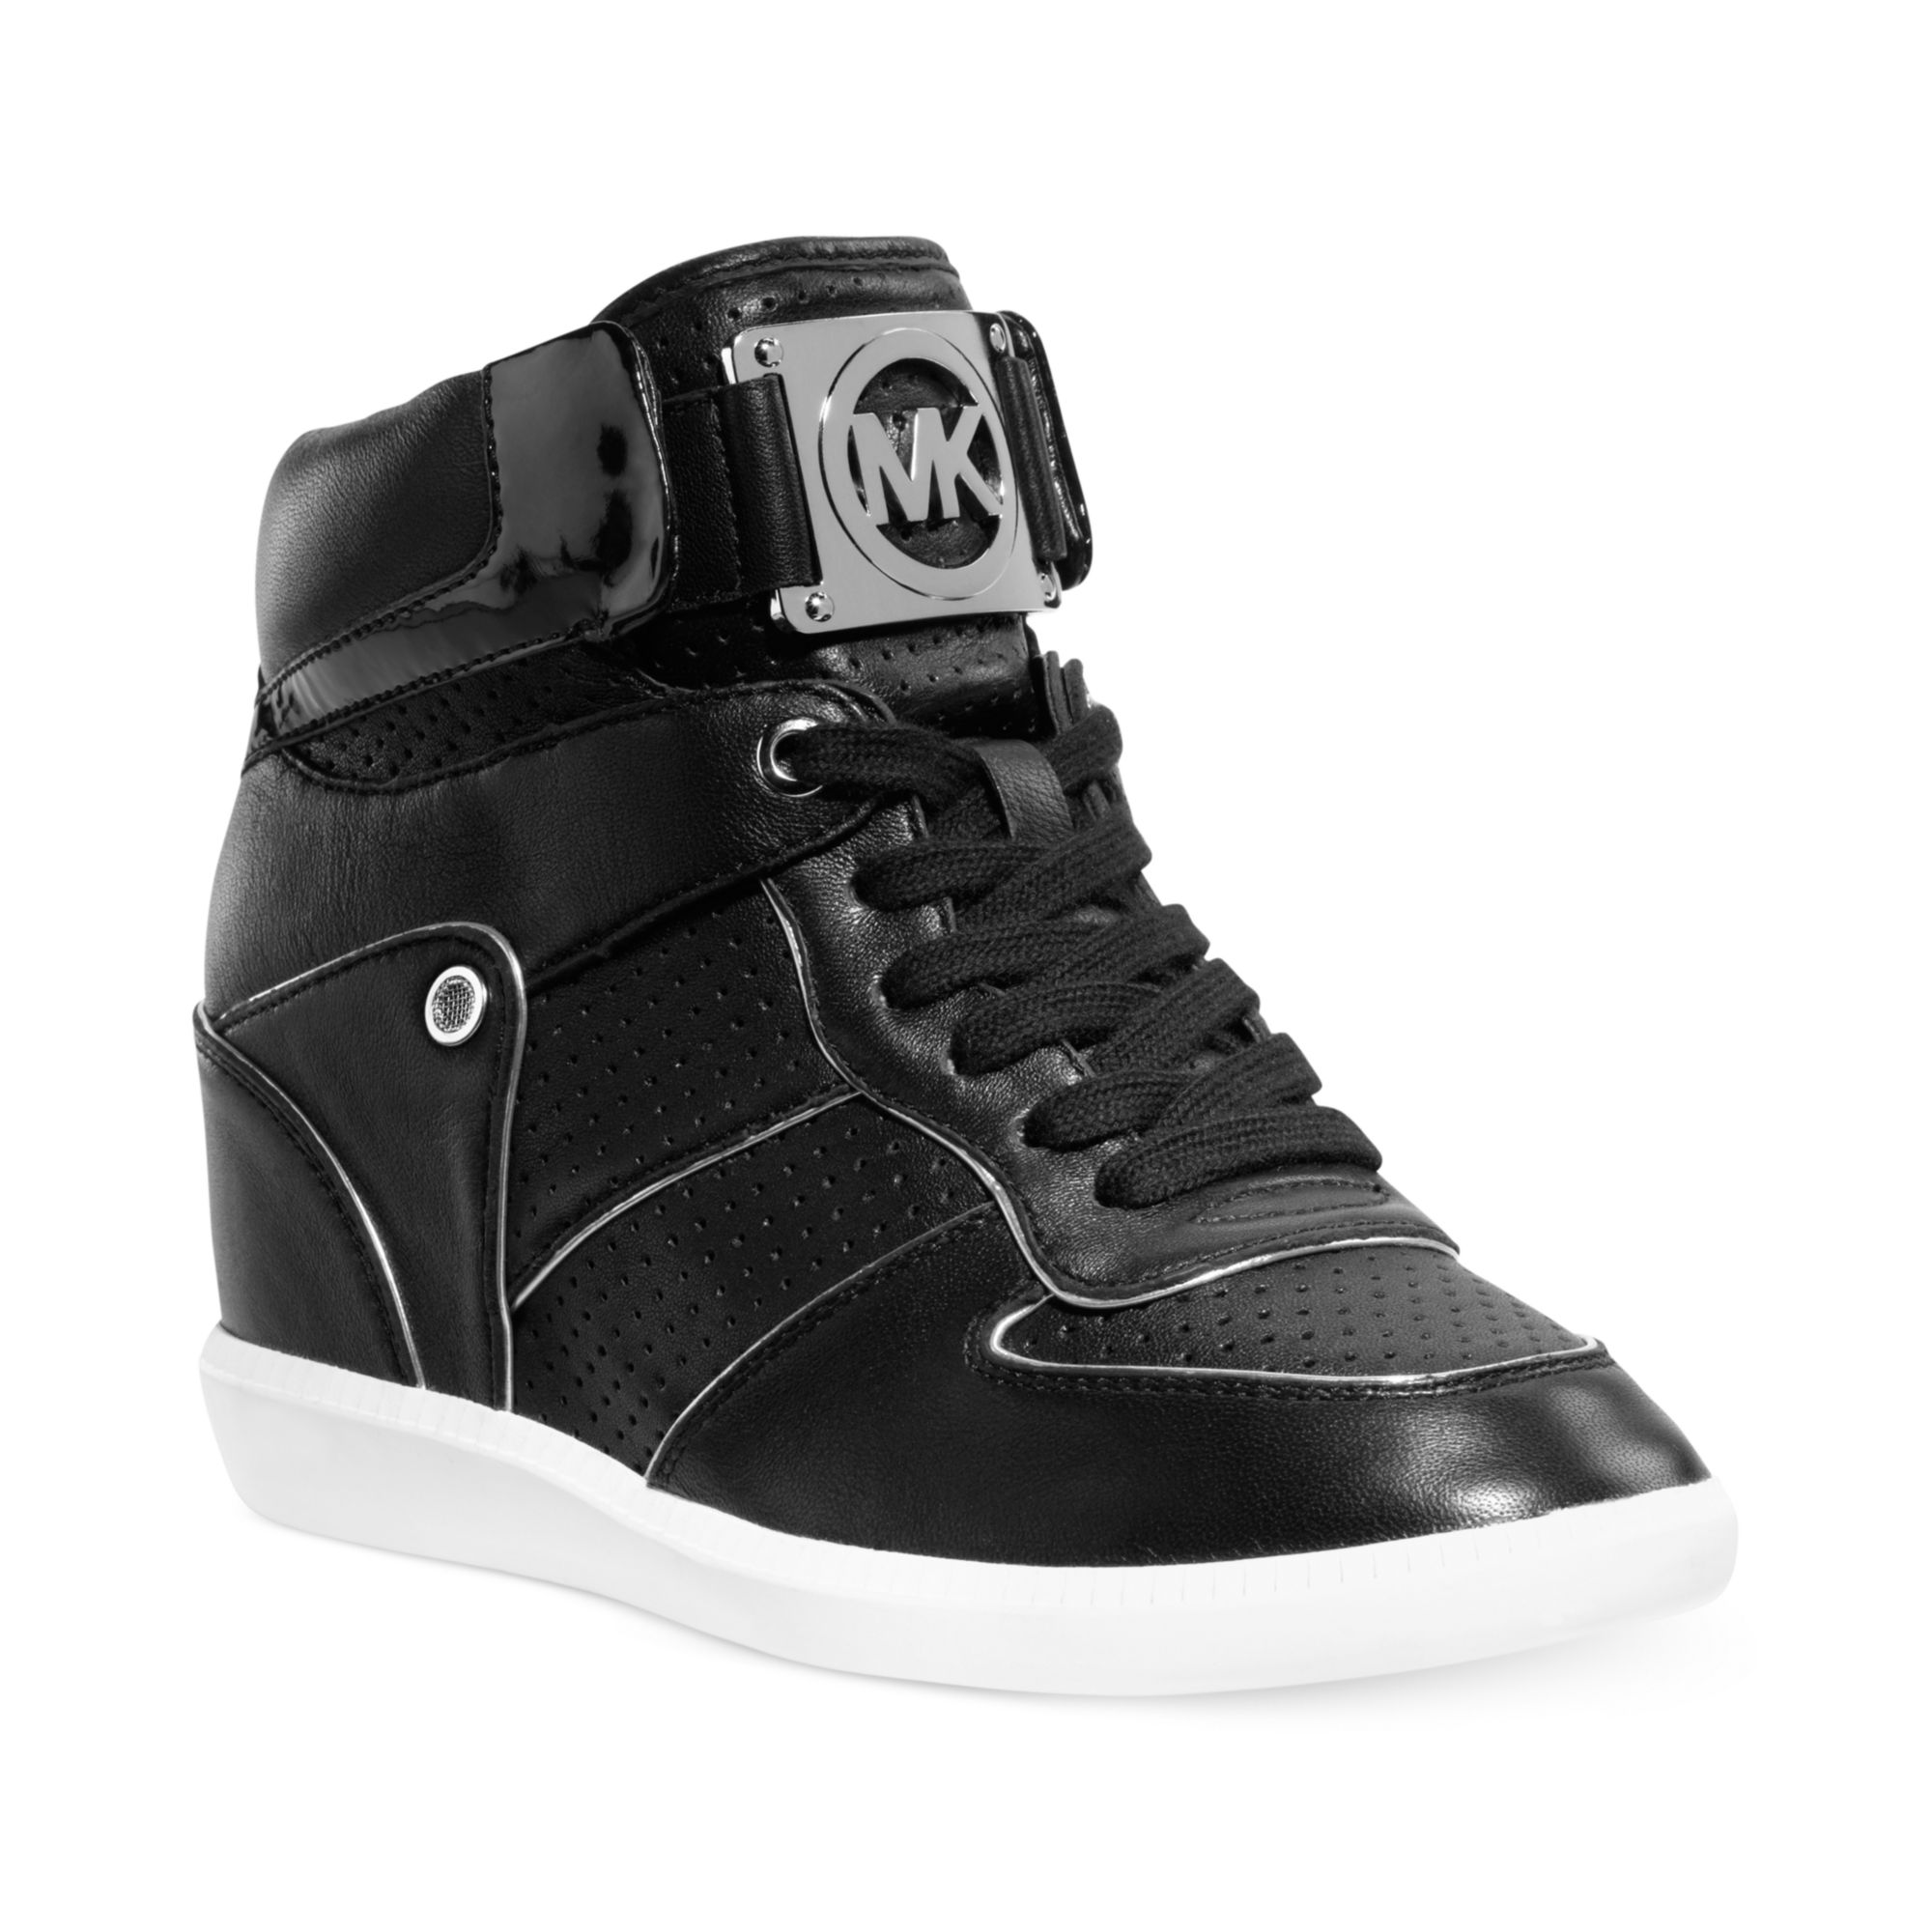 michael kors nikko high top logo sneakers in black lyst. Black Bedroom Furniture Sets. Home Design Ideas